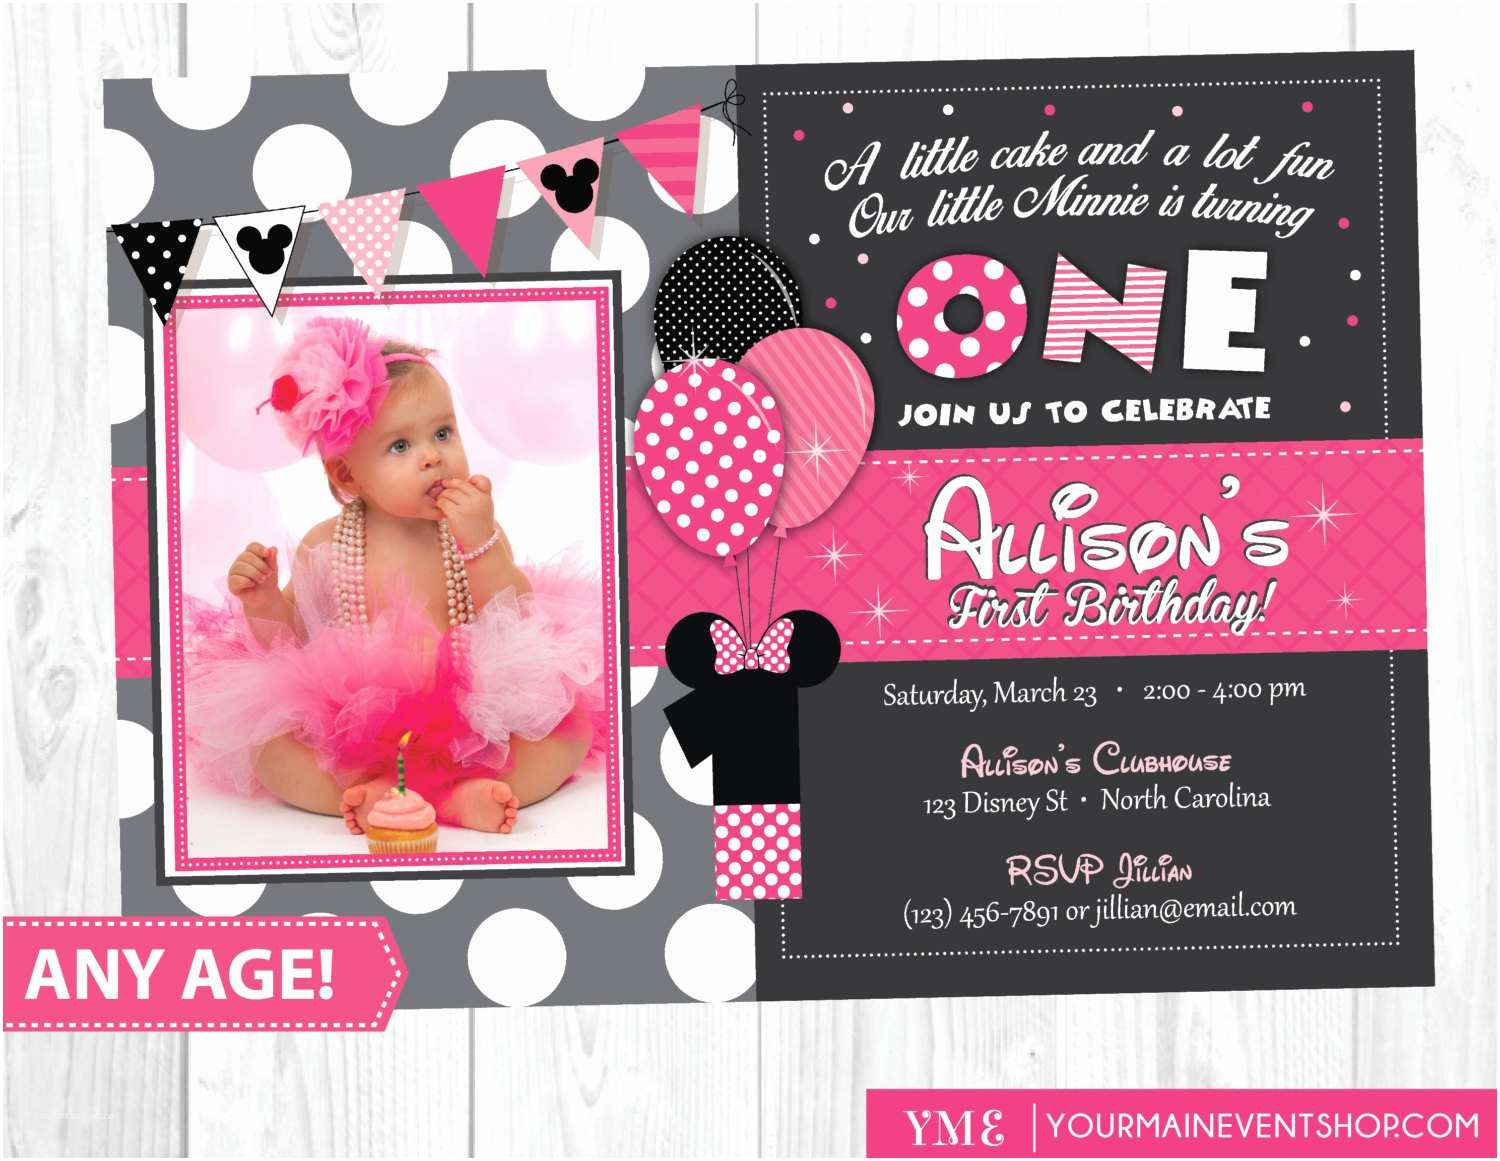 Minnie Mouse Birthday Invitations Personalized Minnie Mouse Birthday Invitation Minnie Mouse